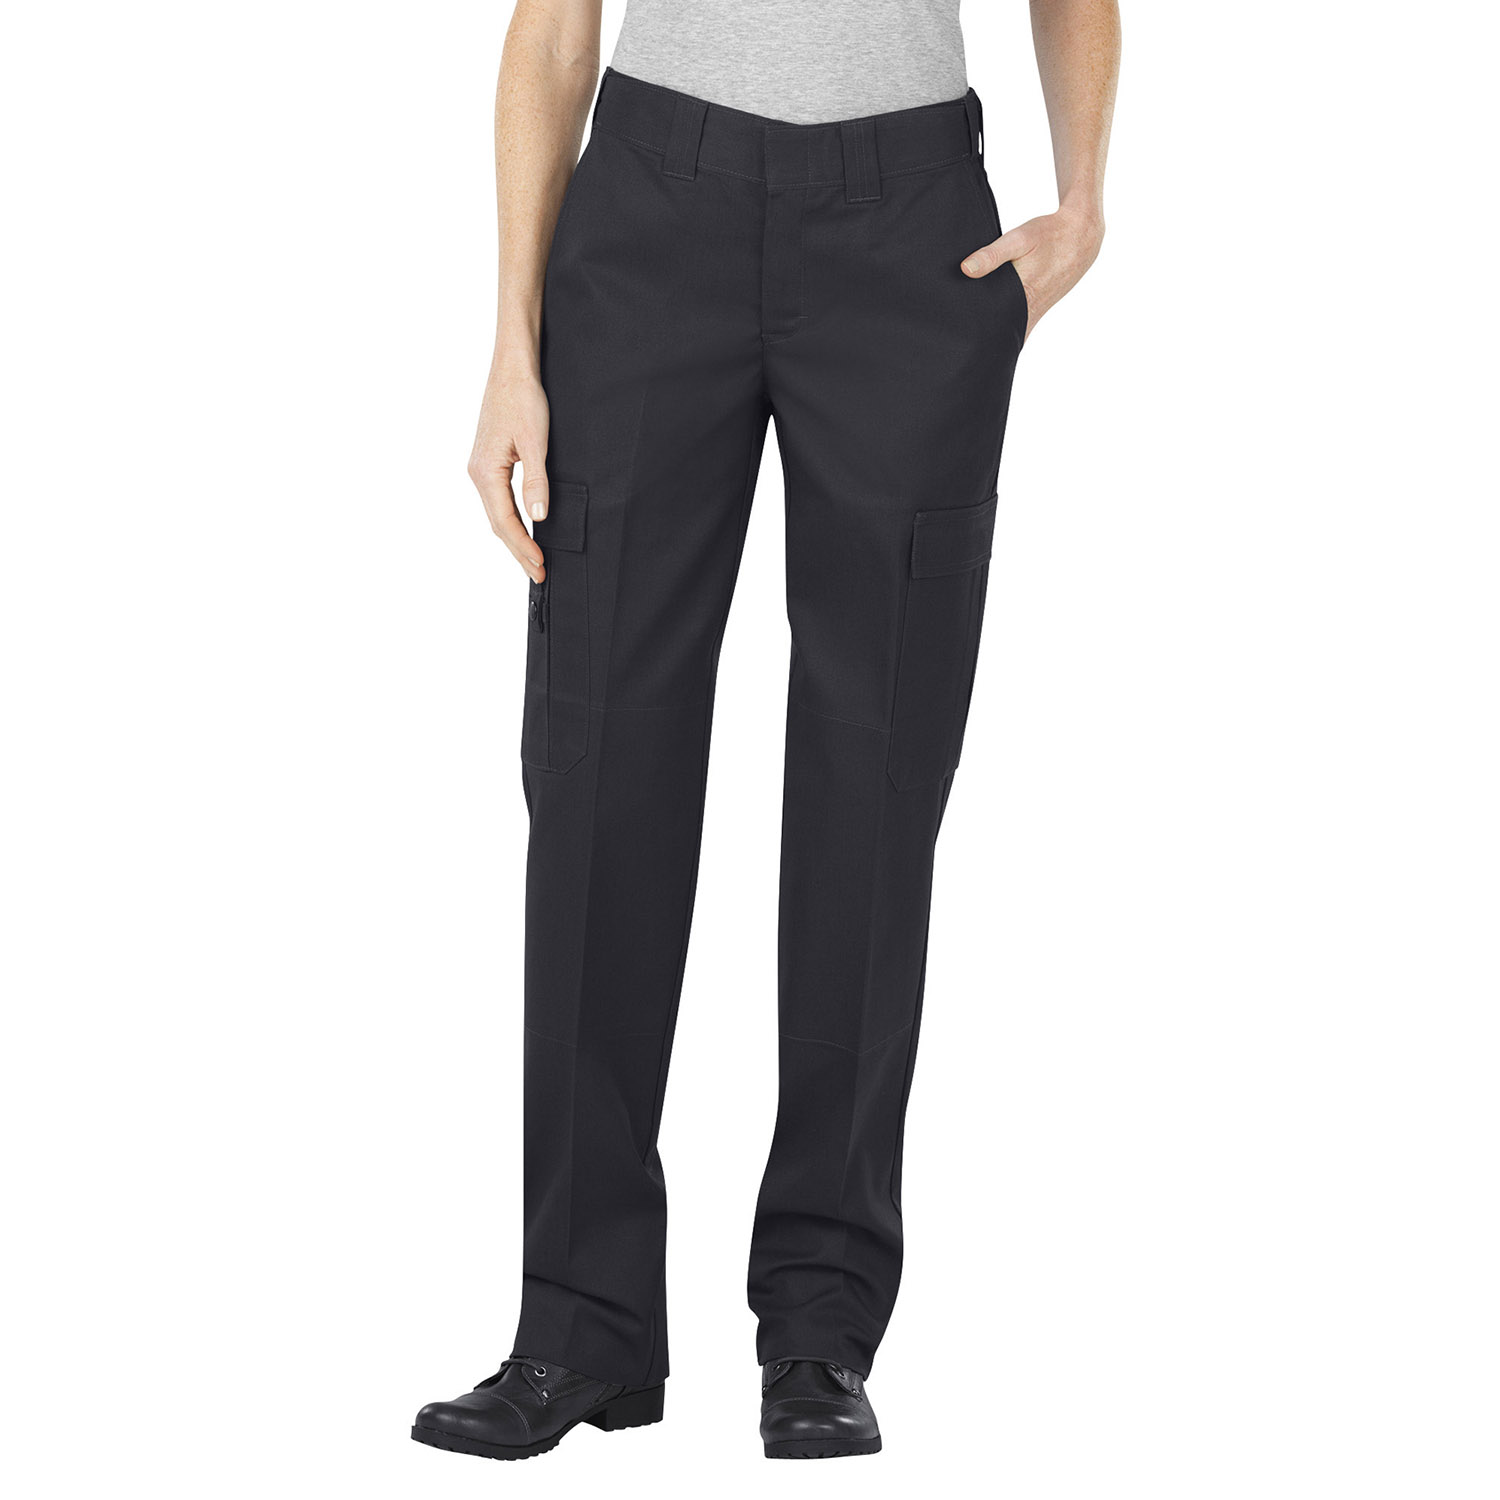 Fantastic Dickies Pants For Women  Bing Images